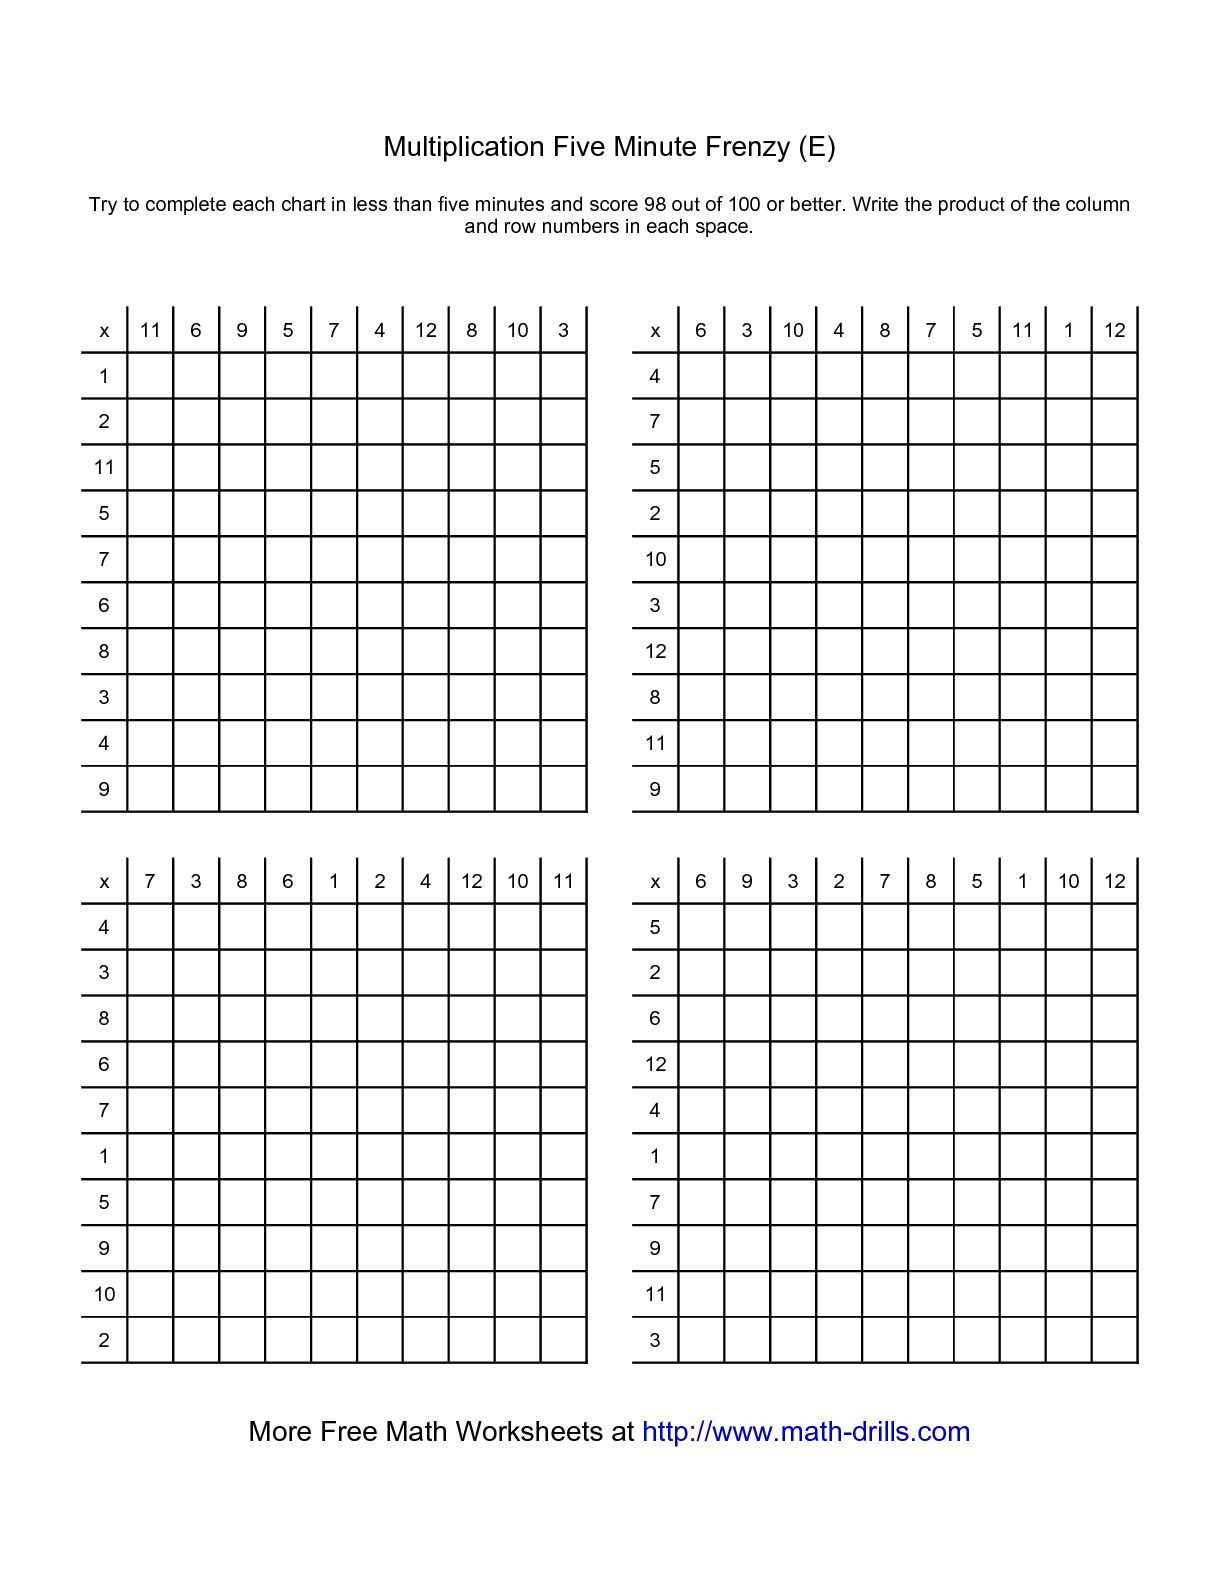 Multiply8 Worksheet | Printable Worksheets And intended for Printable Multiplication Chart 4 Per Page